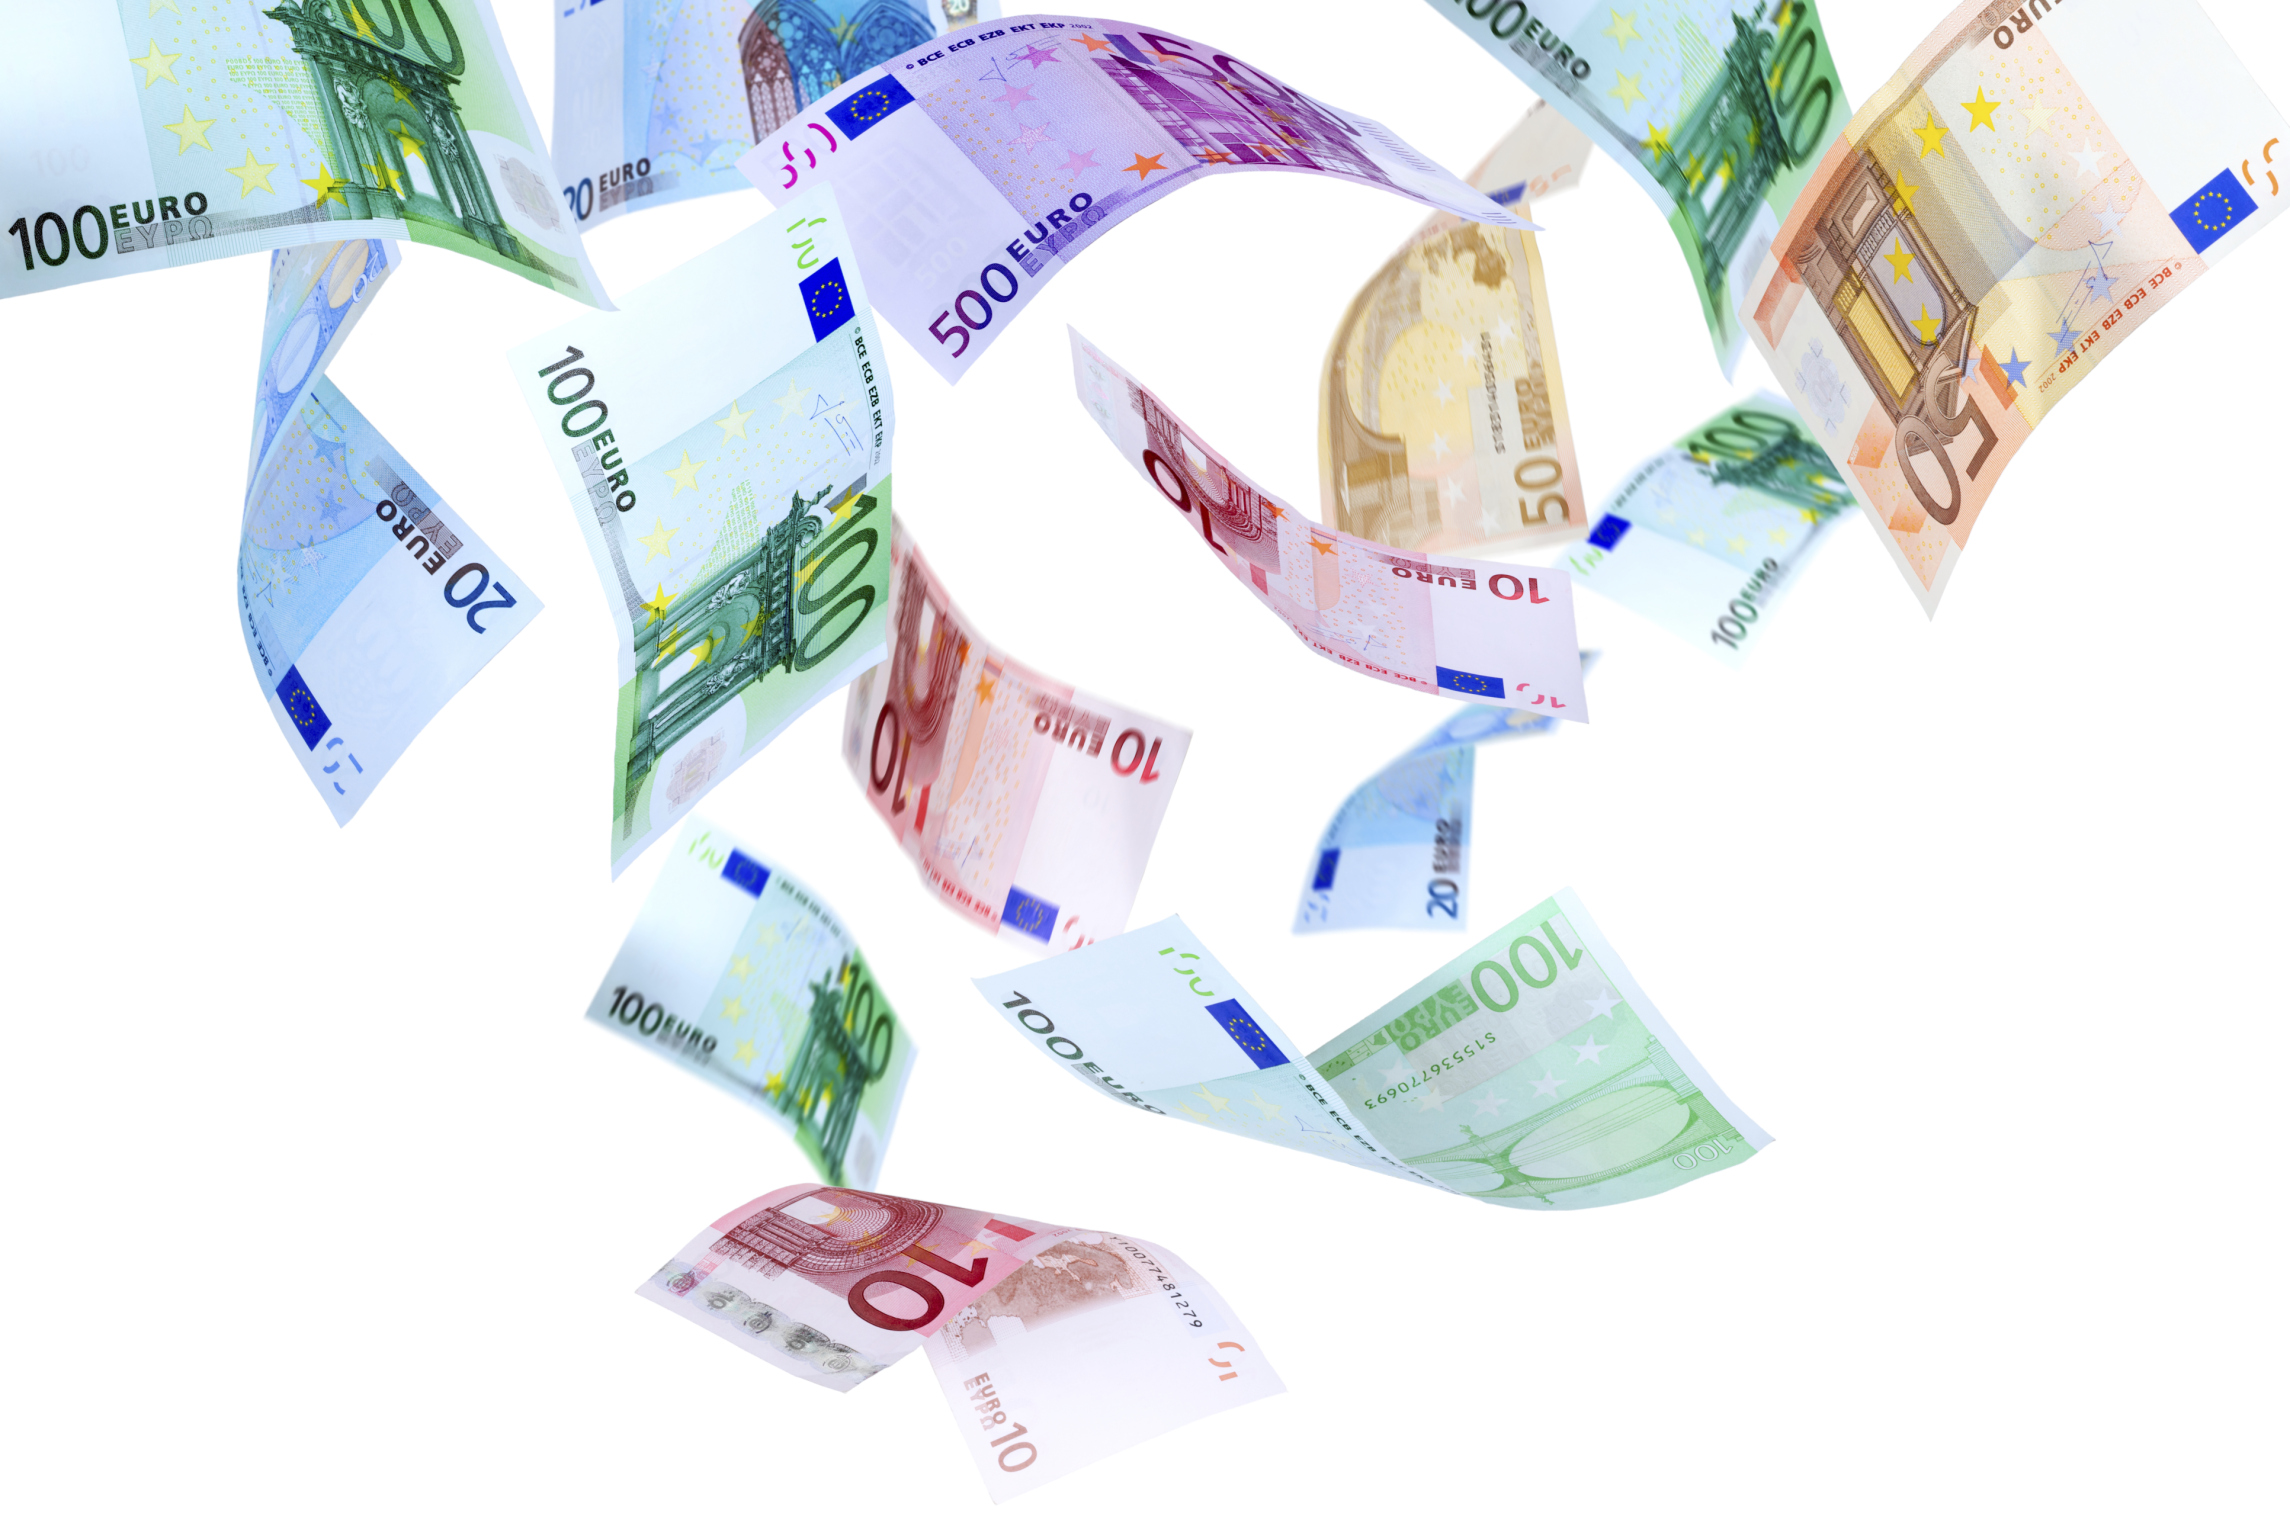 Falling Euro banknotes on a white background